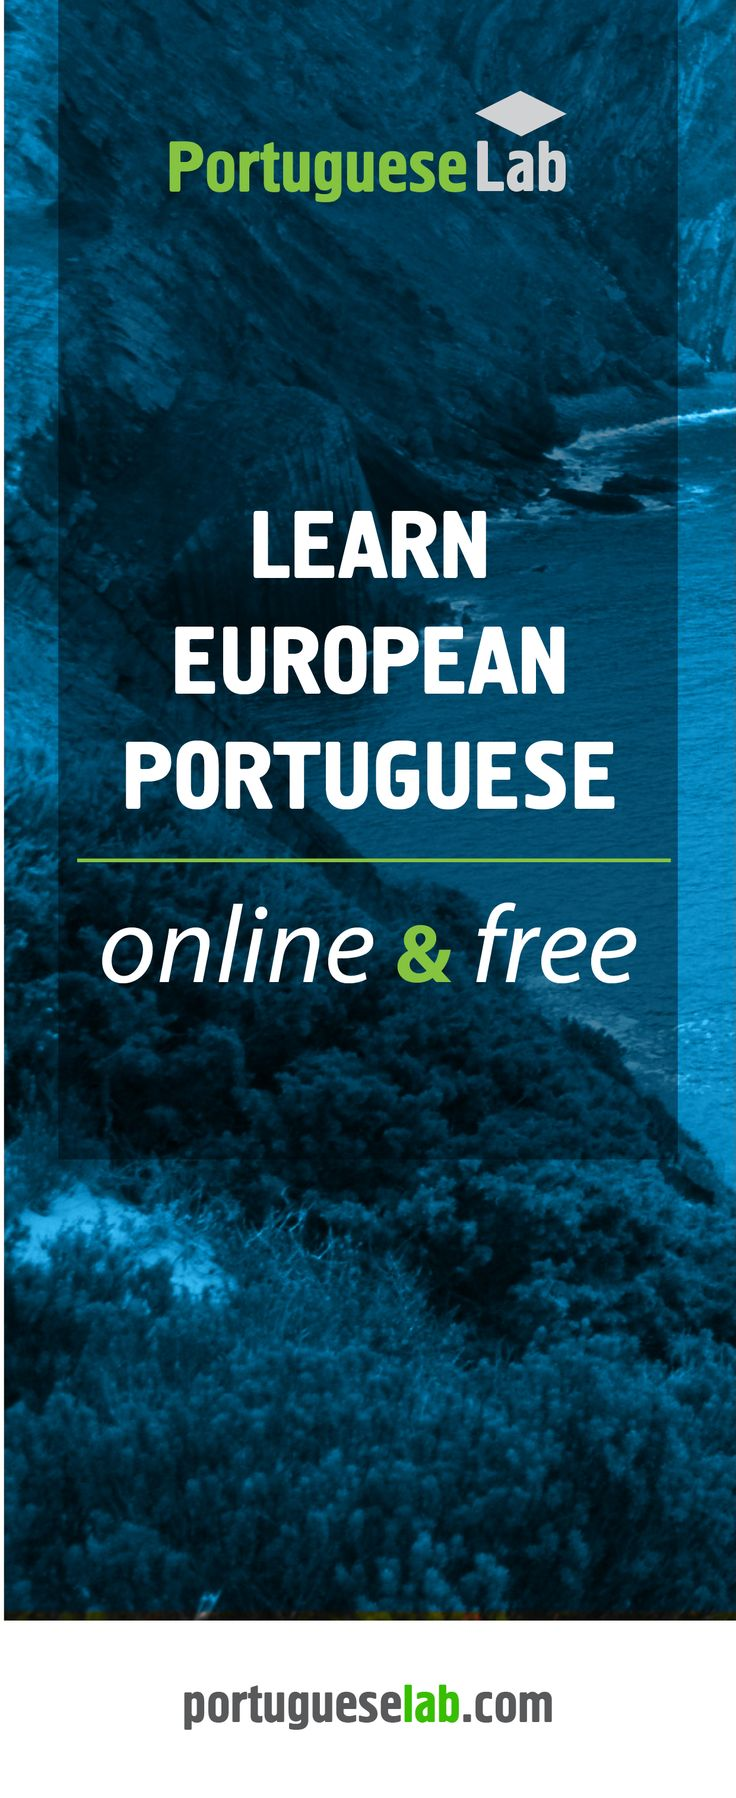 How to learn basic European Portuguese - Quora